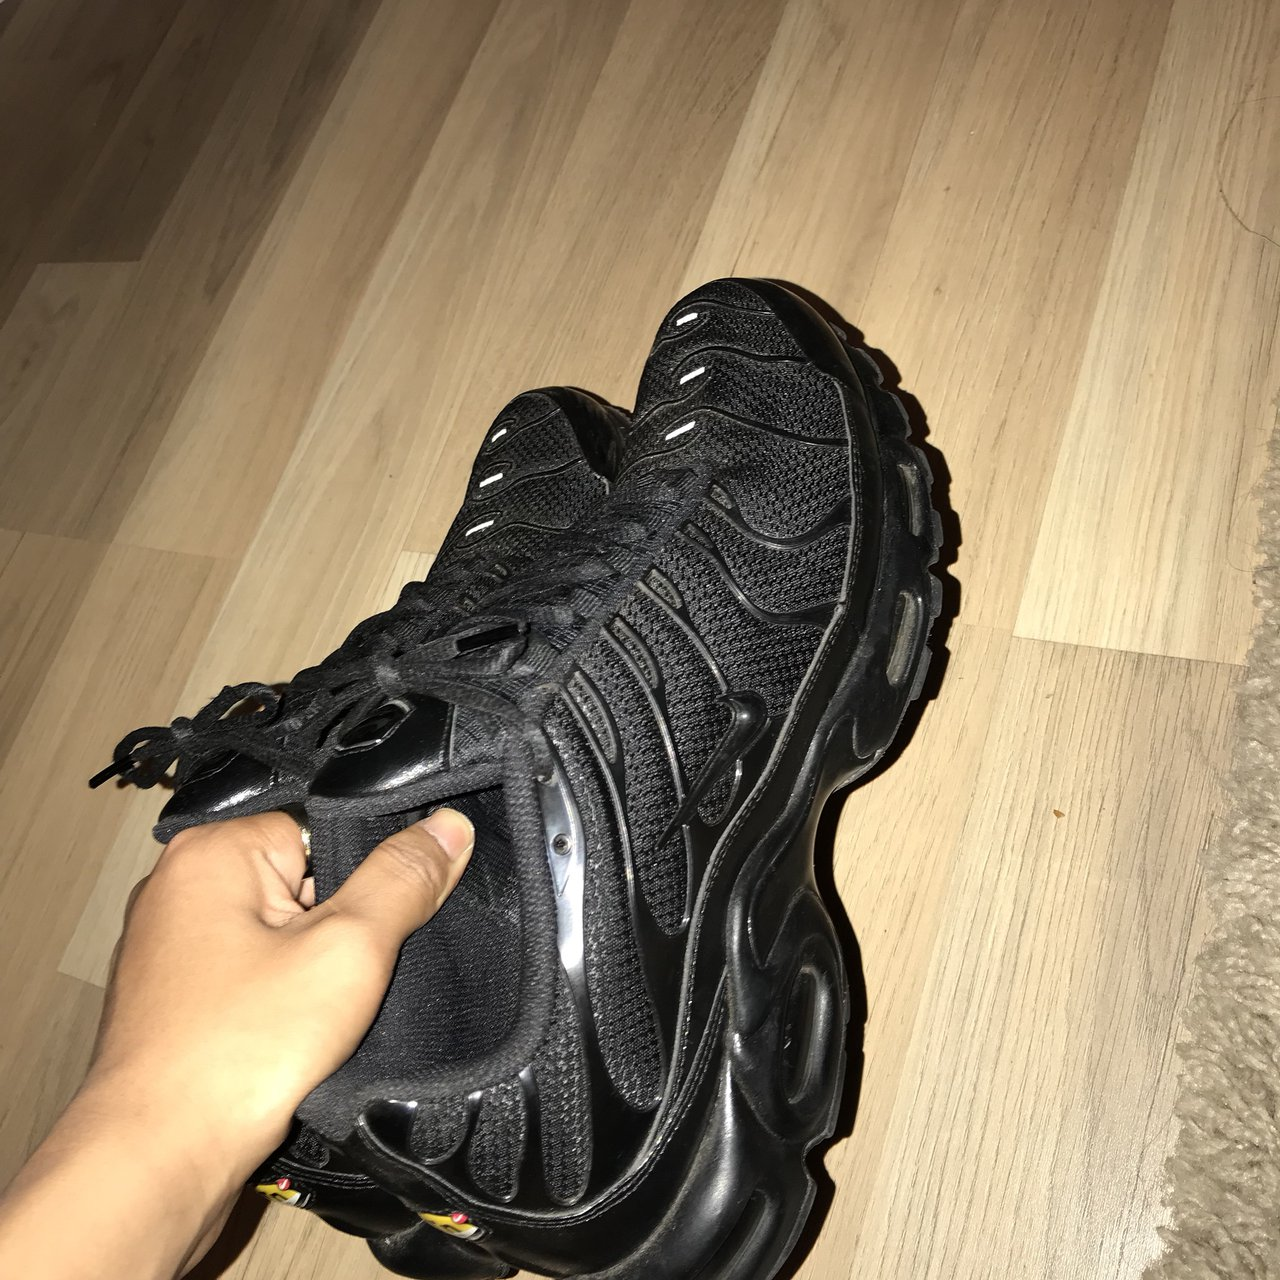 Nike Tns - Triple blacks Size 11 Condition 9 10 only worn a - Depop 396d4c989